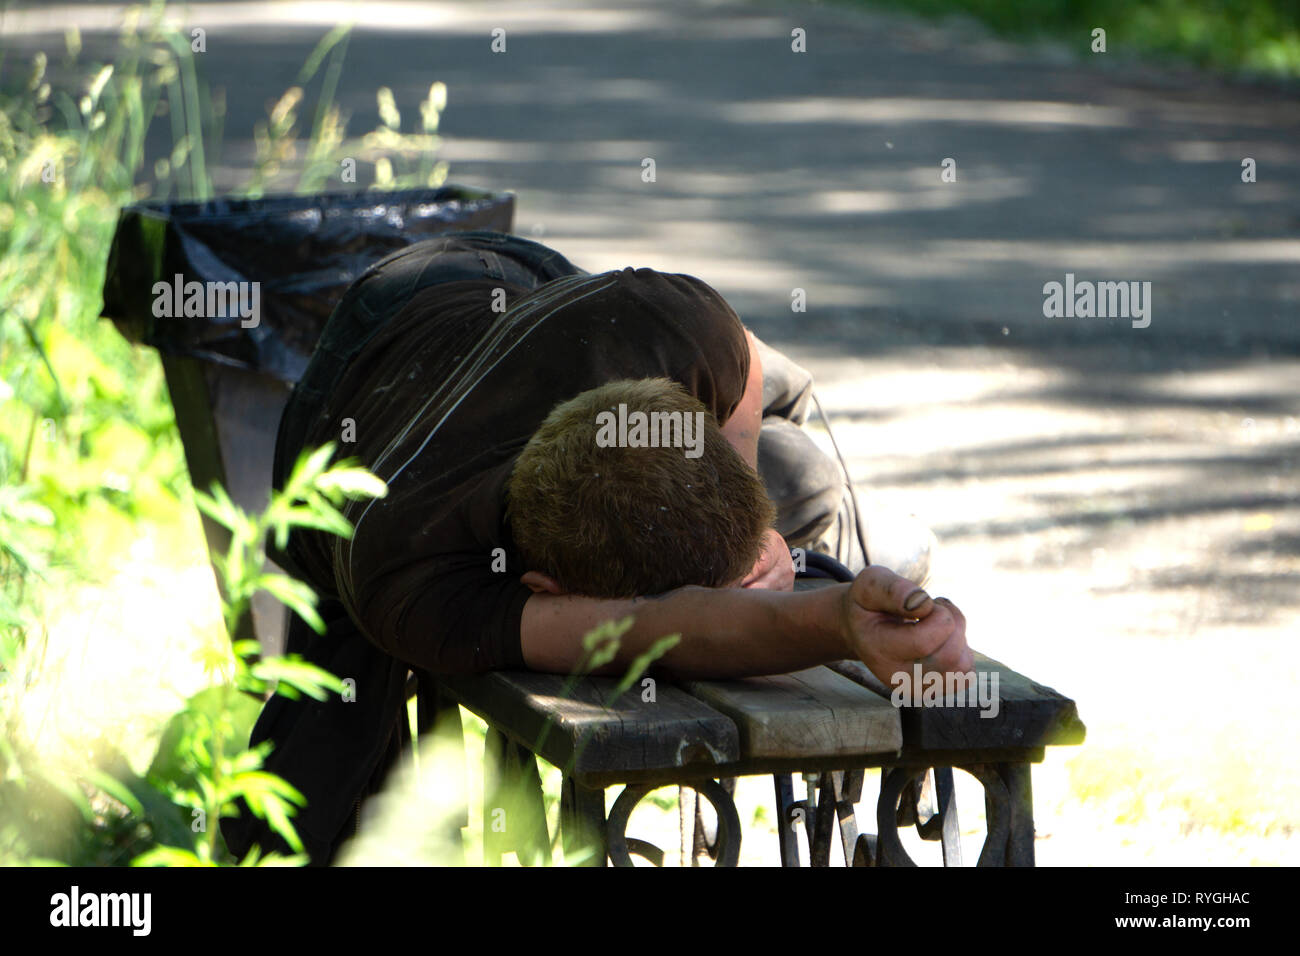 Drunk man sleeping in park on wooden bench - Stock Image